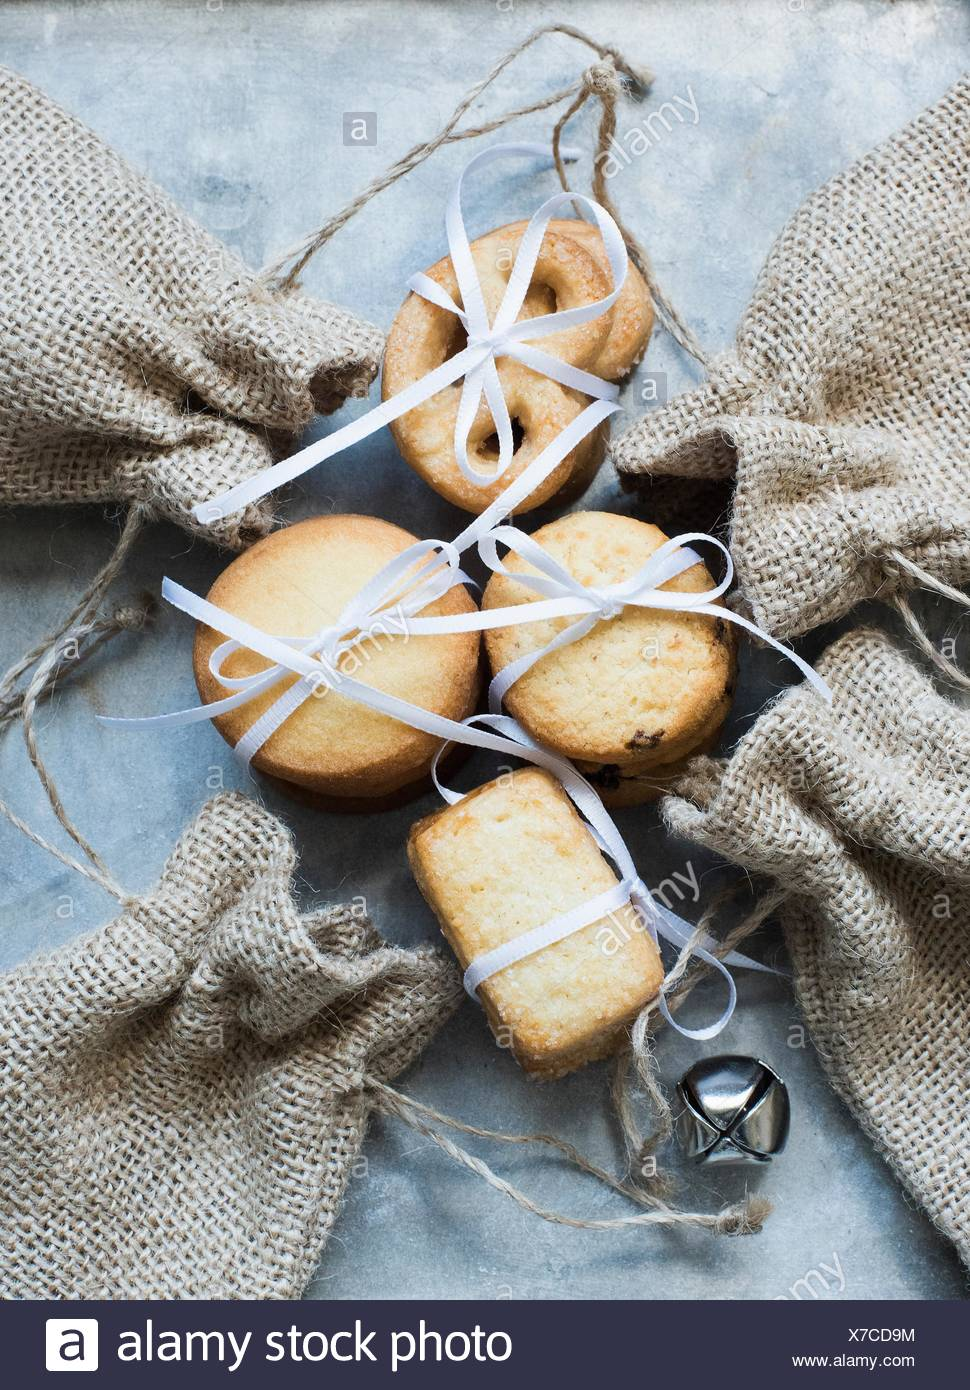 Overhead view of shortbread cookies tied with white ribbon and burlap bags - Stock Image